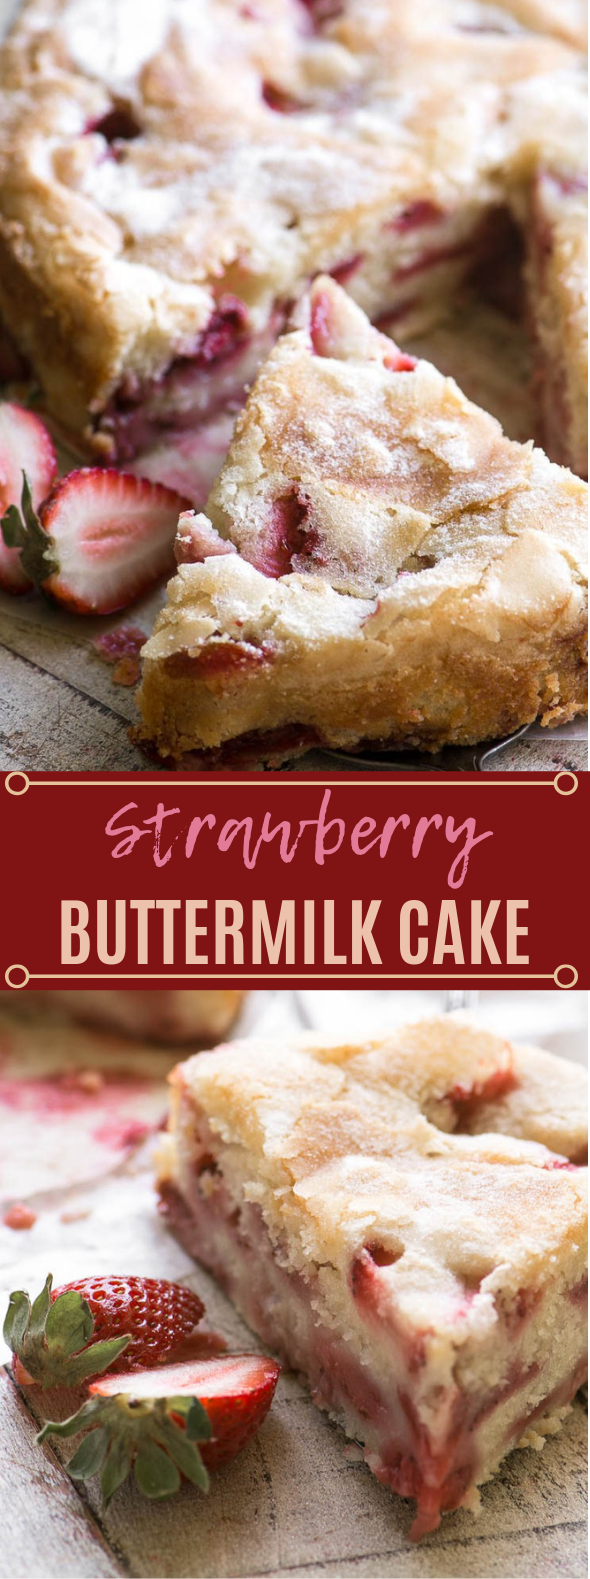 Strawberry Buttermilk Cake #cake #desserts